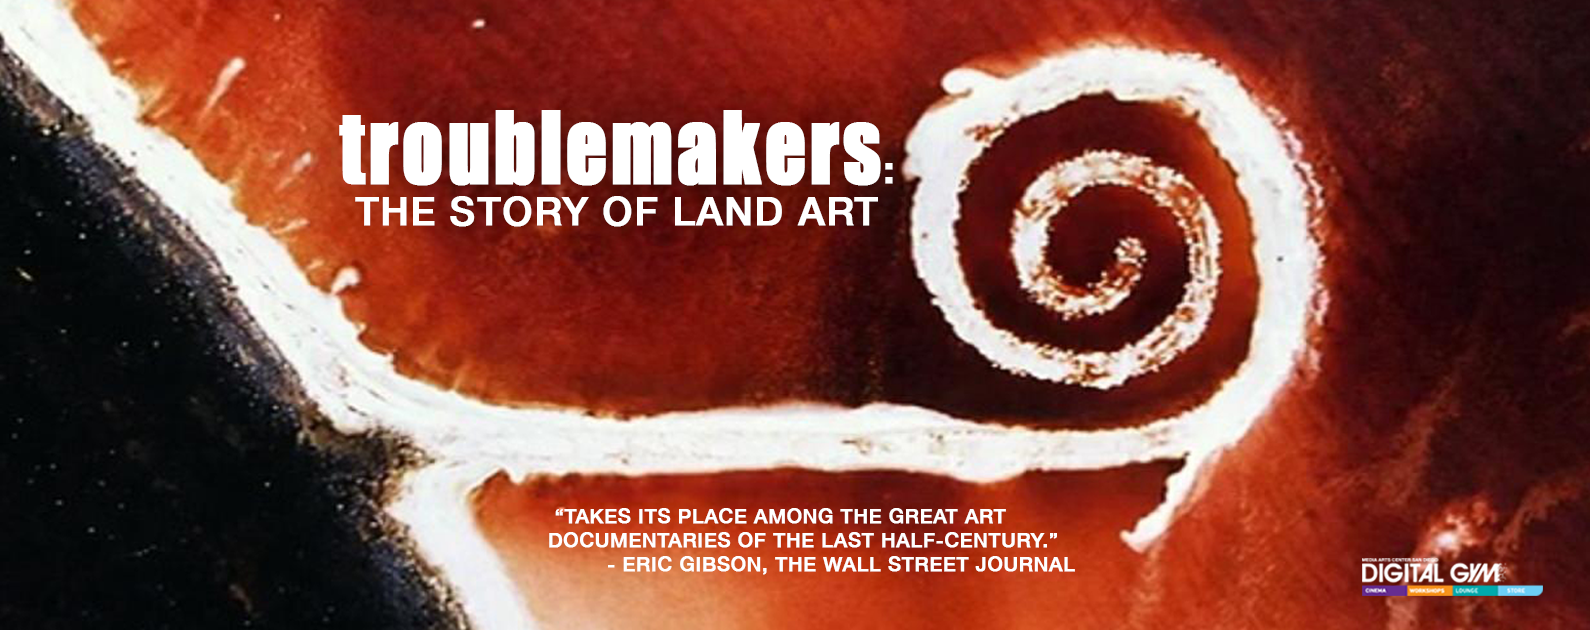 Troublemakers: The Story of Land Art Now Playing (Jan. 8-14)